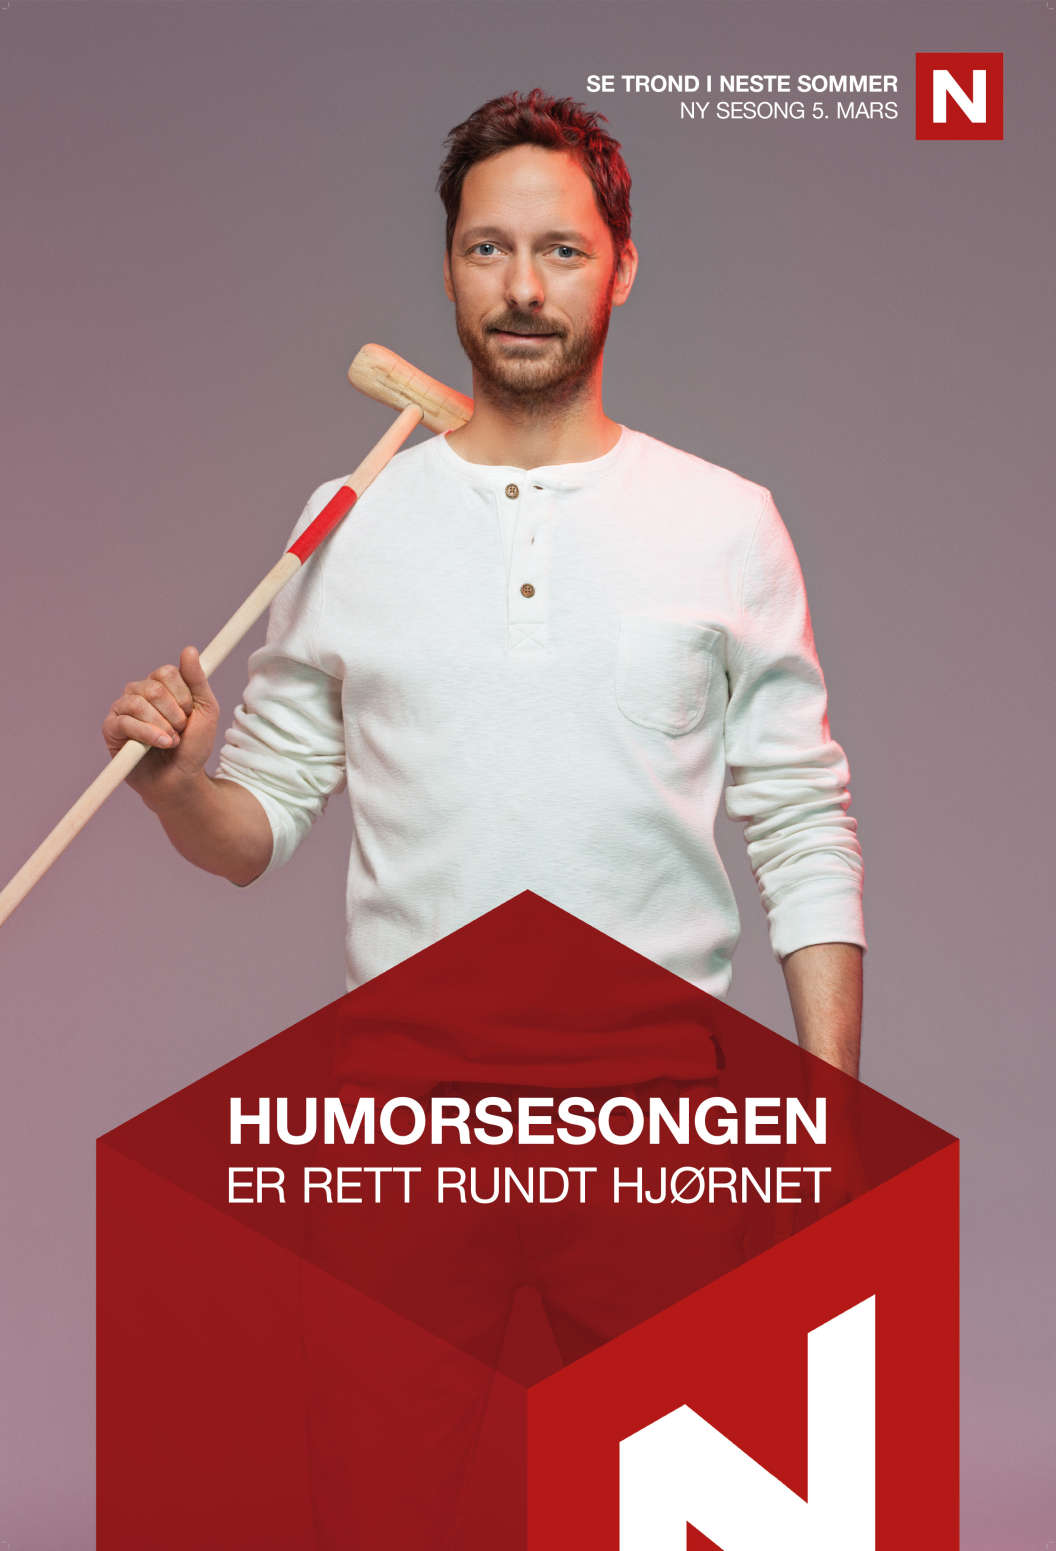 TVNorge Humorsesongen 2017 Trond Fausa Aurvåg